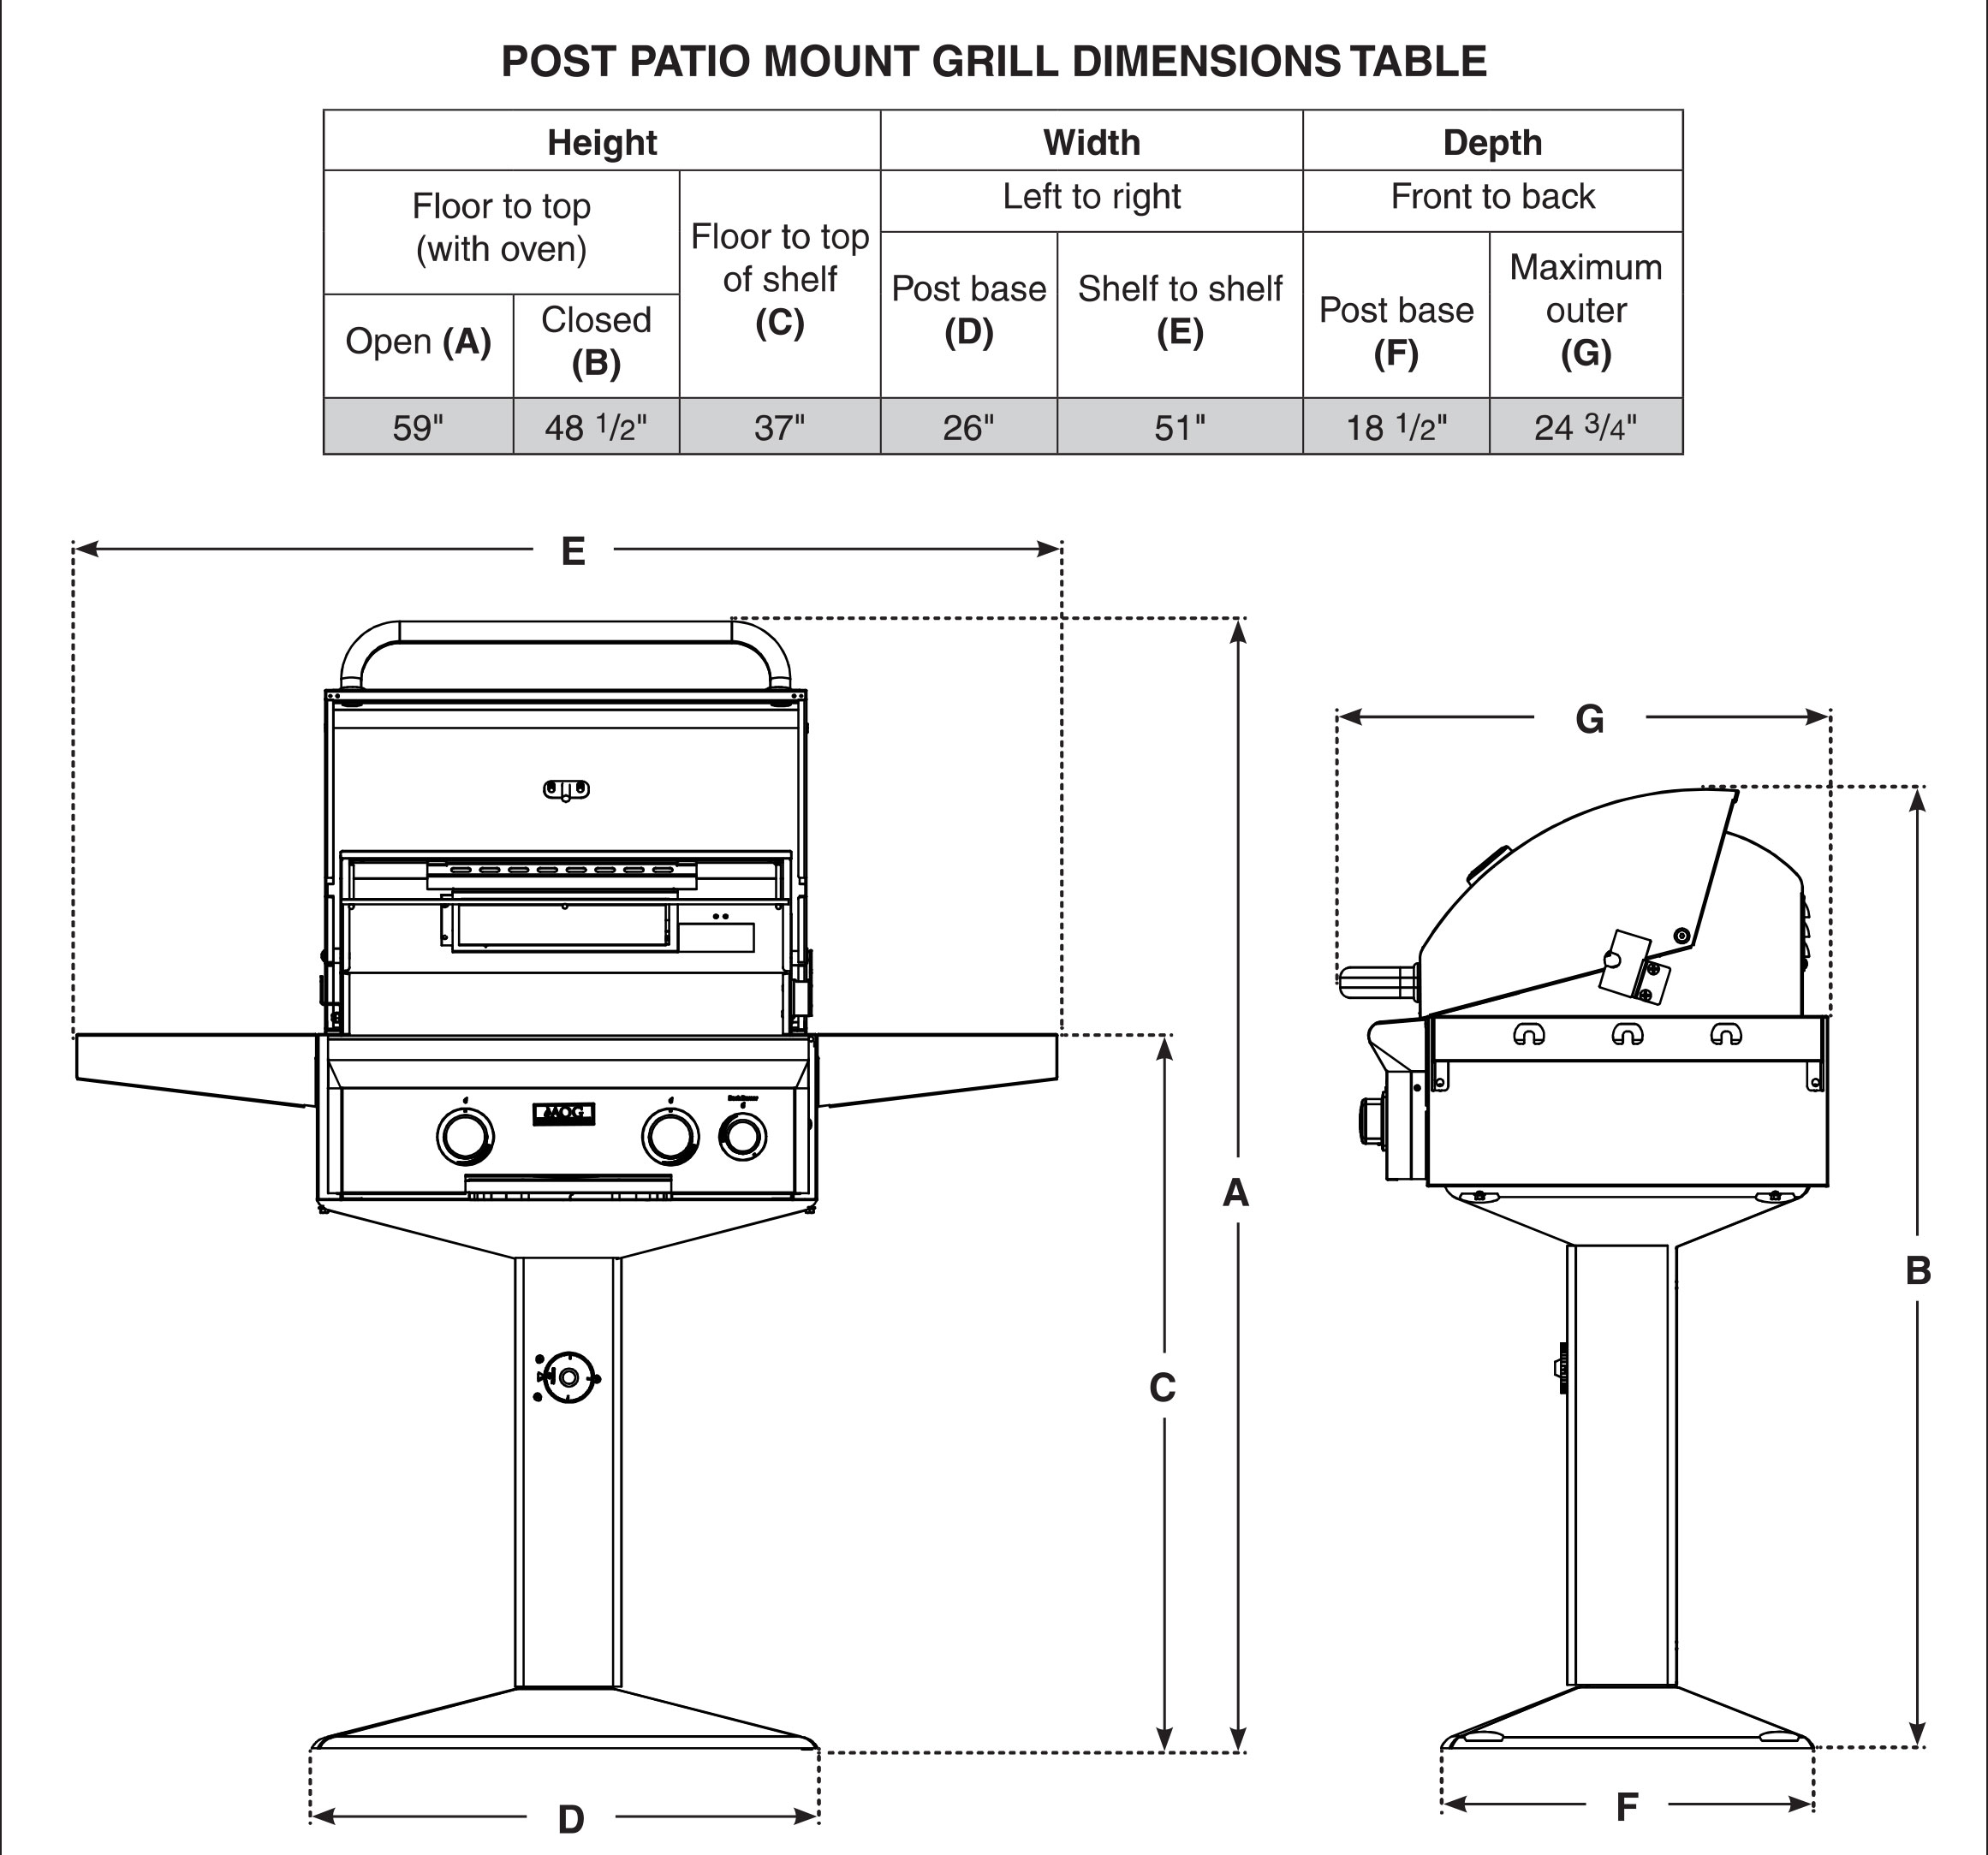 Aog T Series 24 Inch Gas Grill On In Ground Post